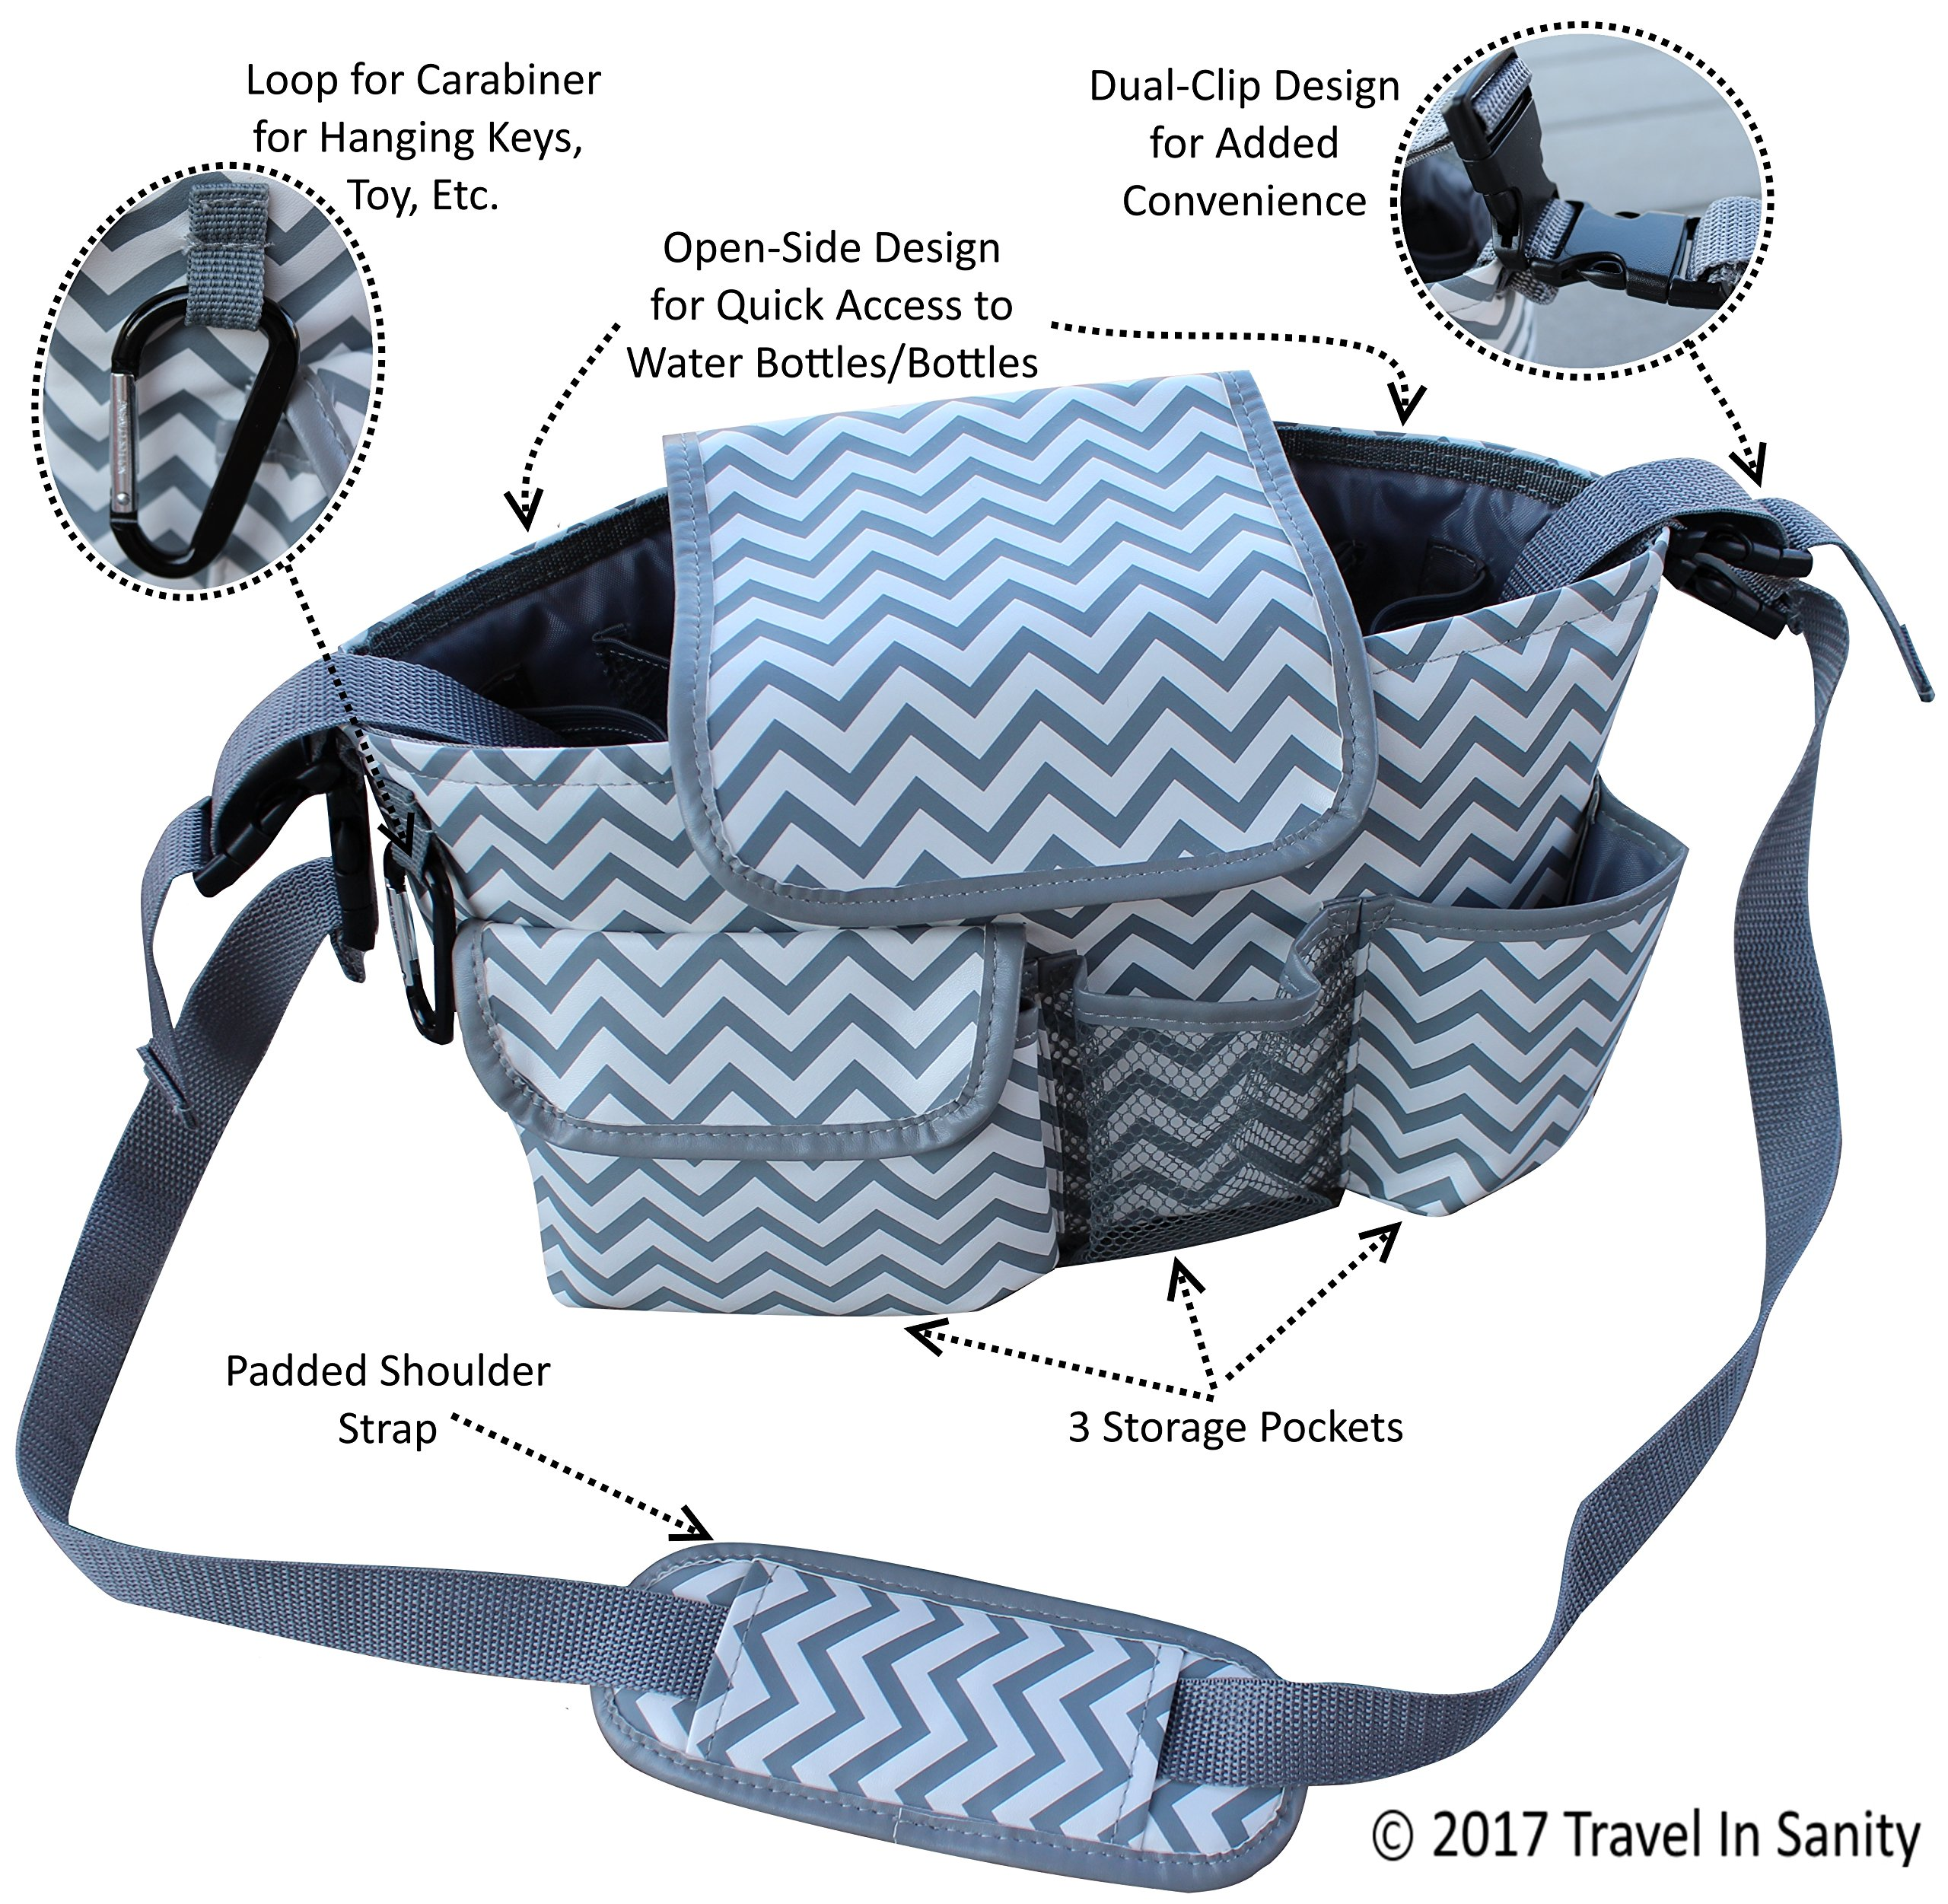 Universal Stroller Organizer with Cup Holders | Mini Diaper Bag | Easily Store Wallets, Keys, Bottles, Diapers, Wipes & Toys. | Premium Chevron Stroller Caddy by Travel in Sanity by Travel in Sanity (Image #2)